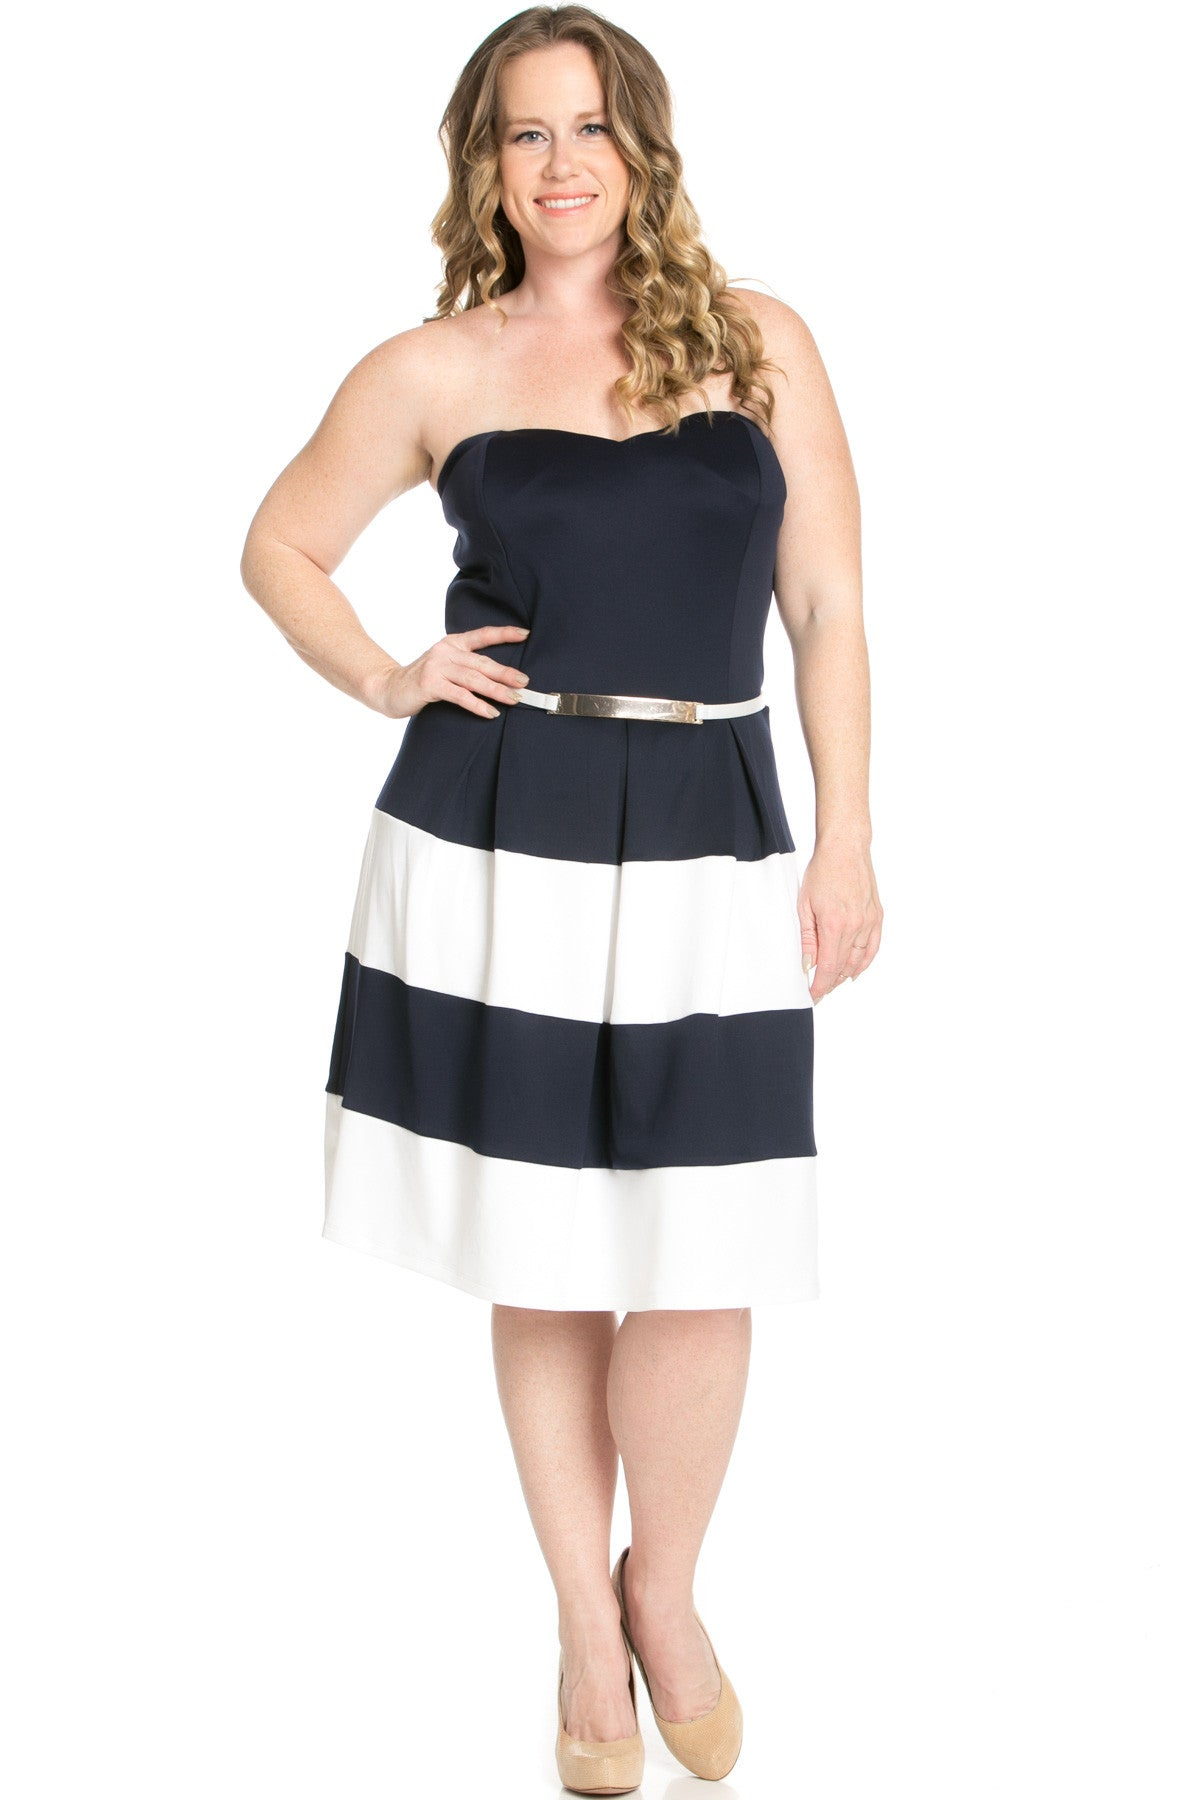 Sweetheart Color Block in Navy Tube Dress with Belt - Dresses - My Yuccie - 3